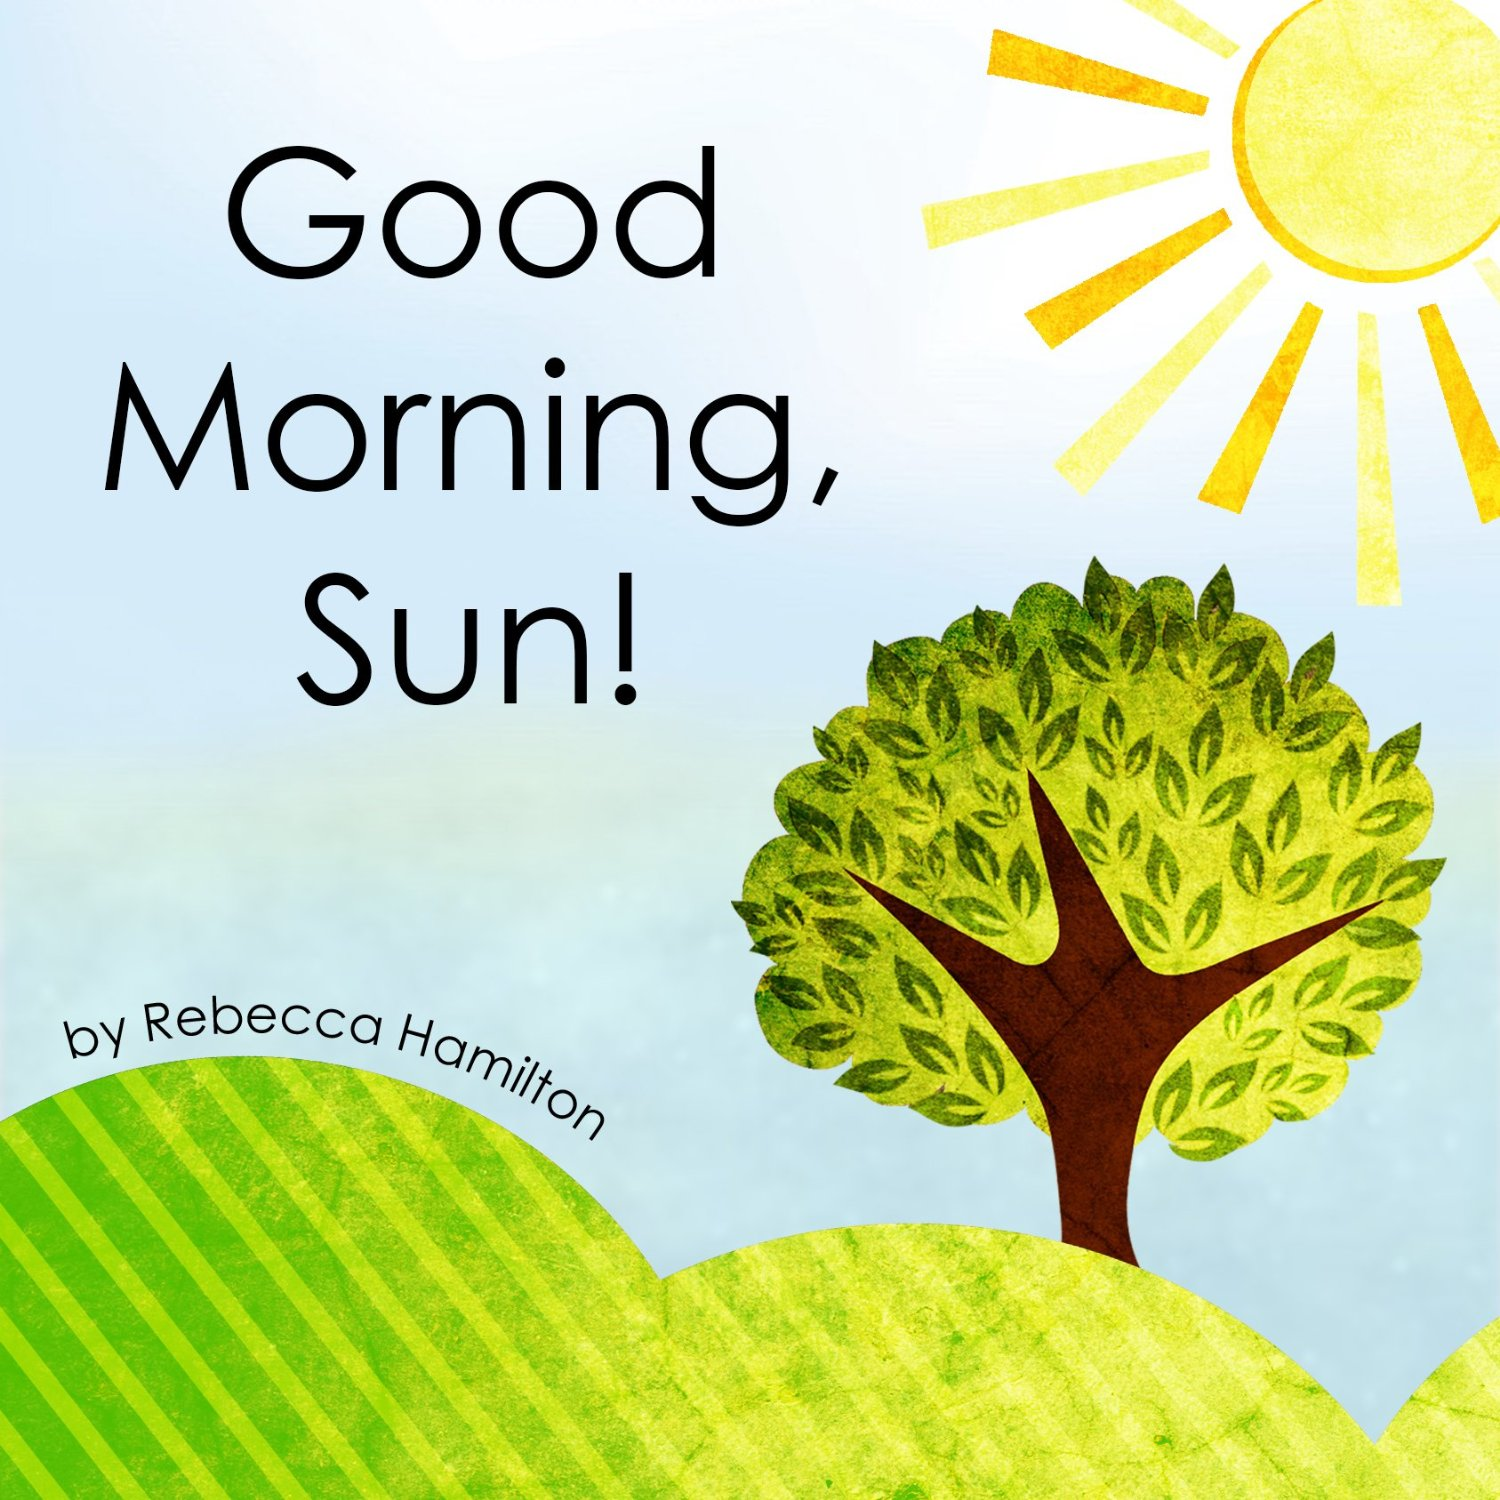 Review good morning sun by rebecca hamilton